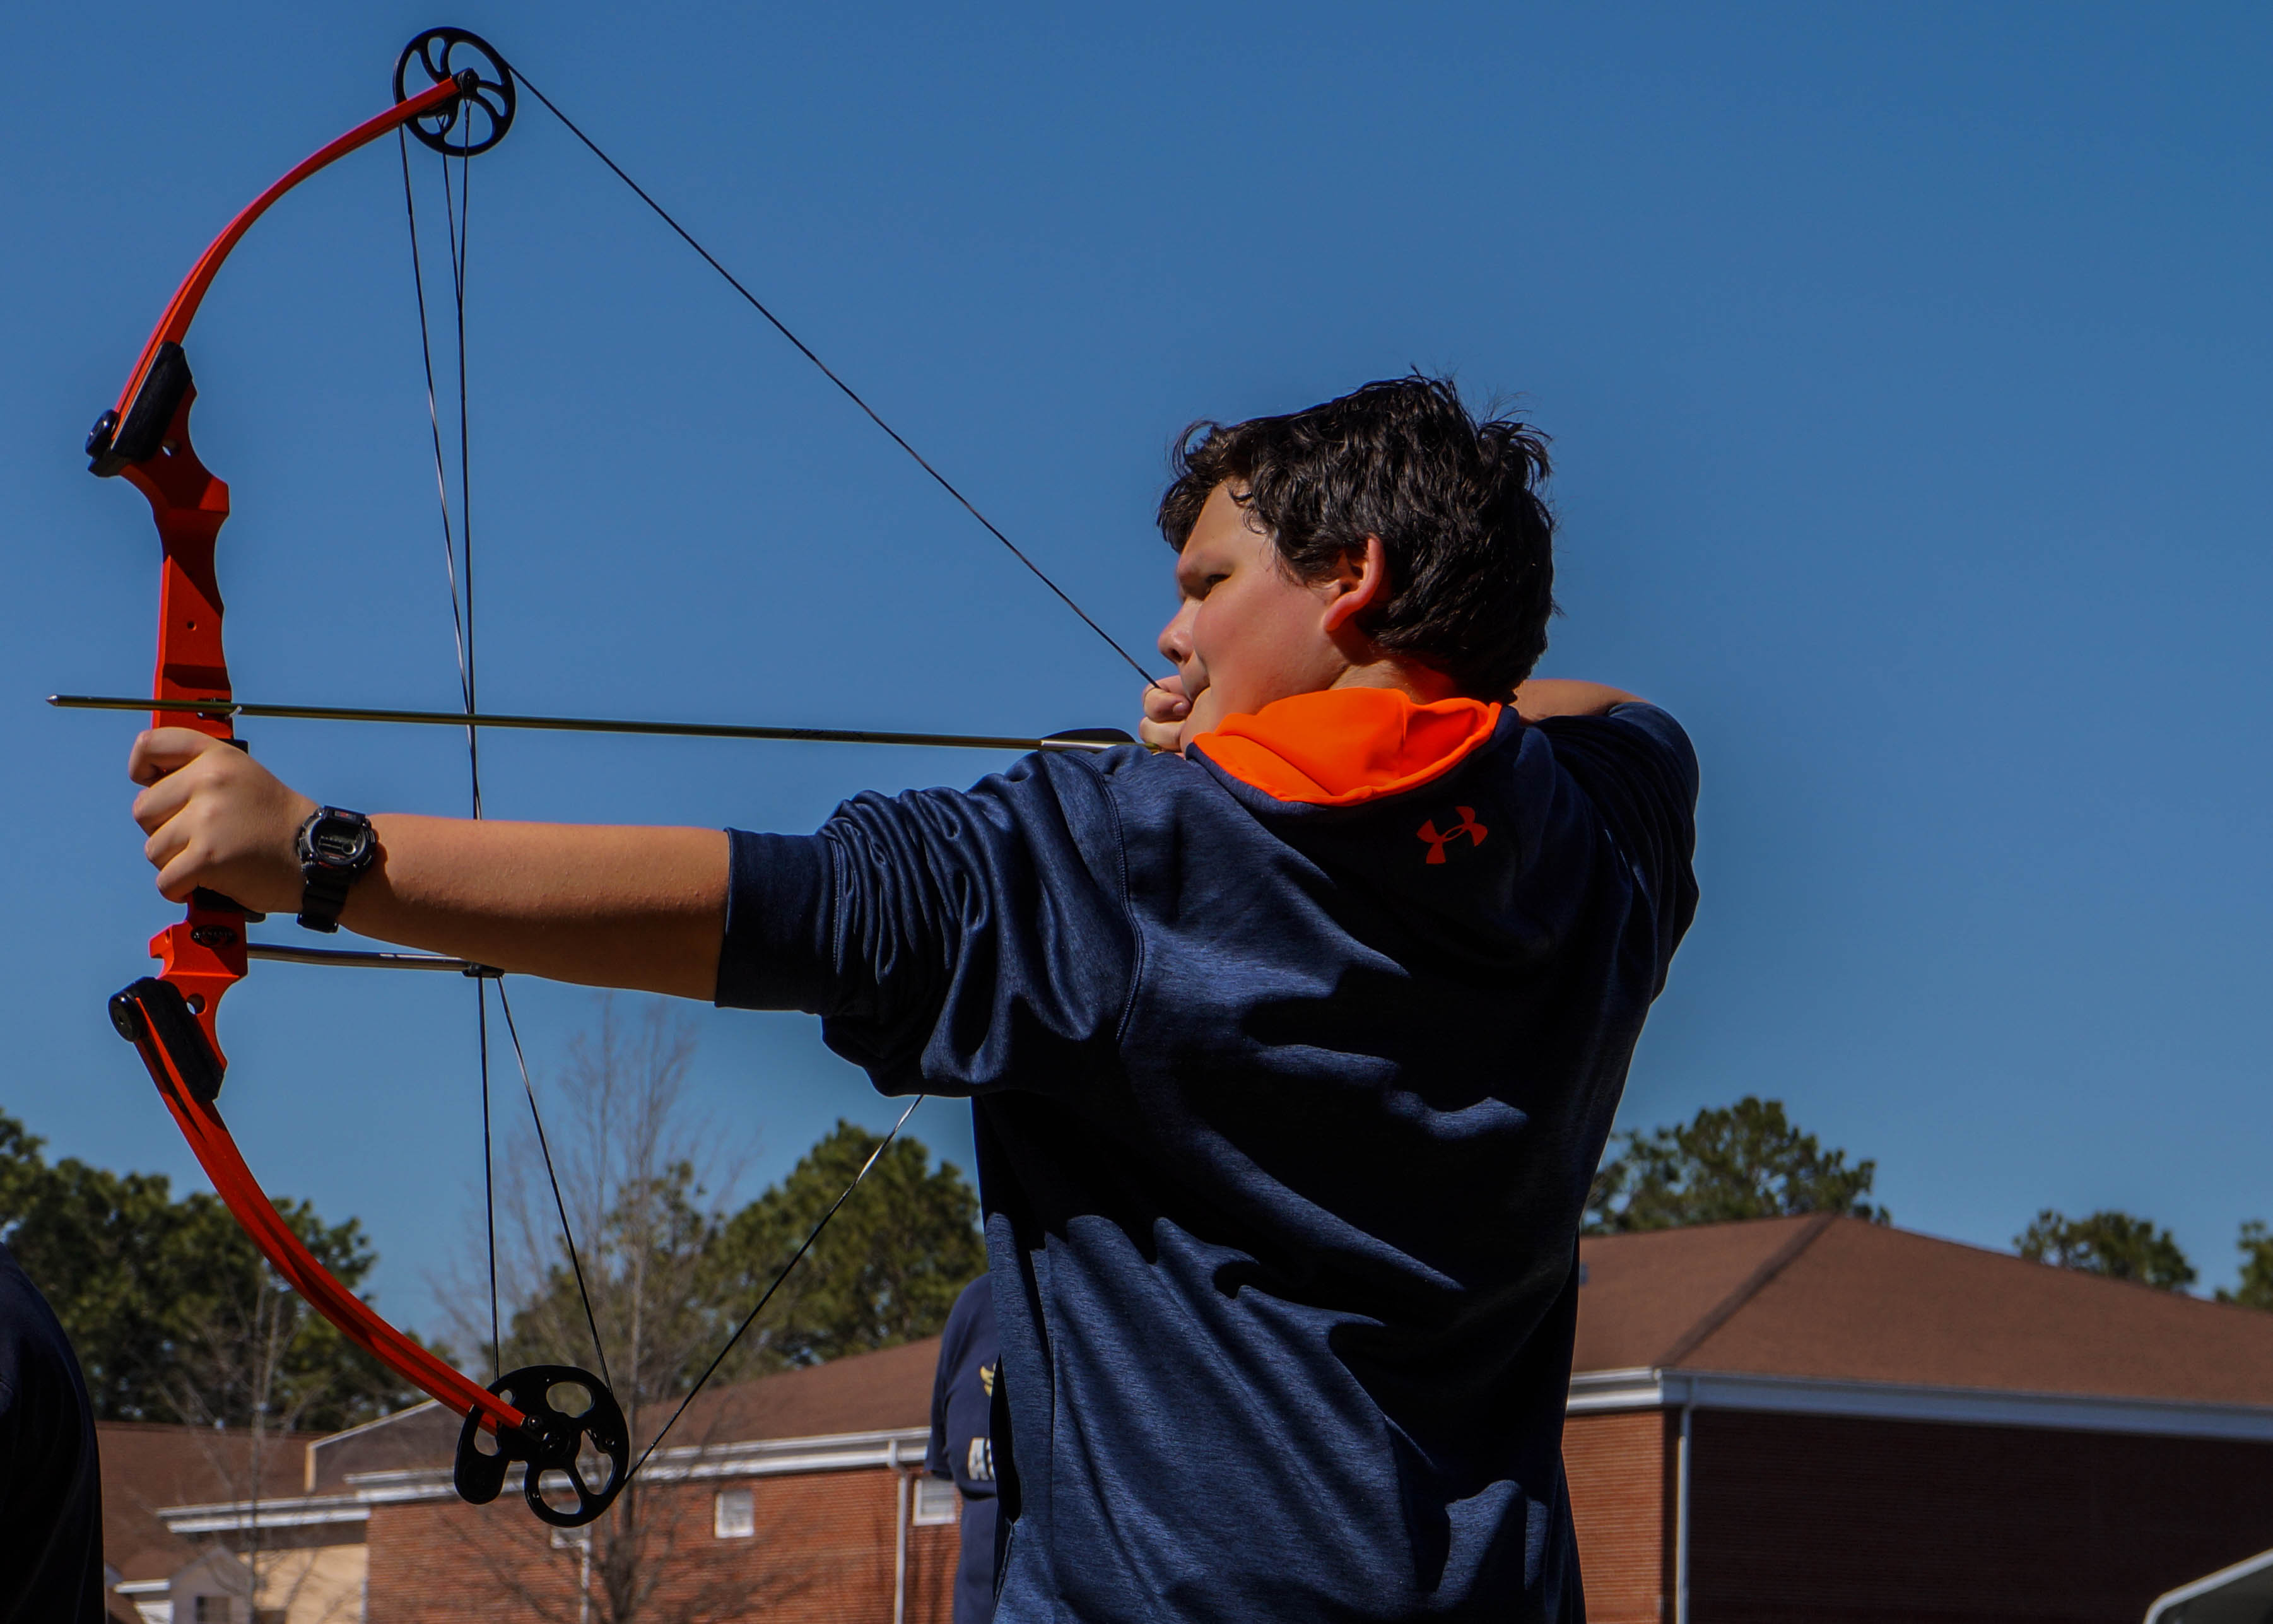 private school offers archery